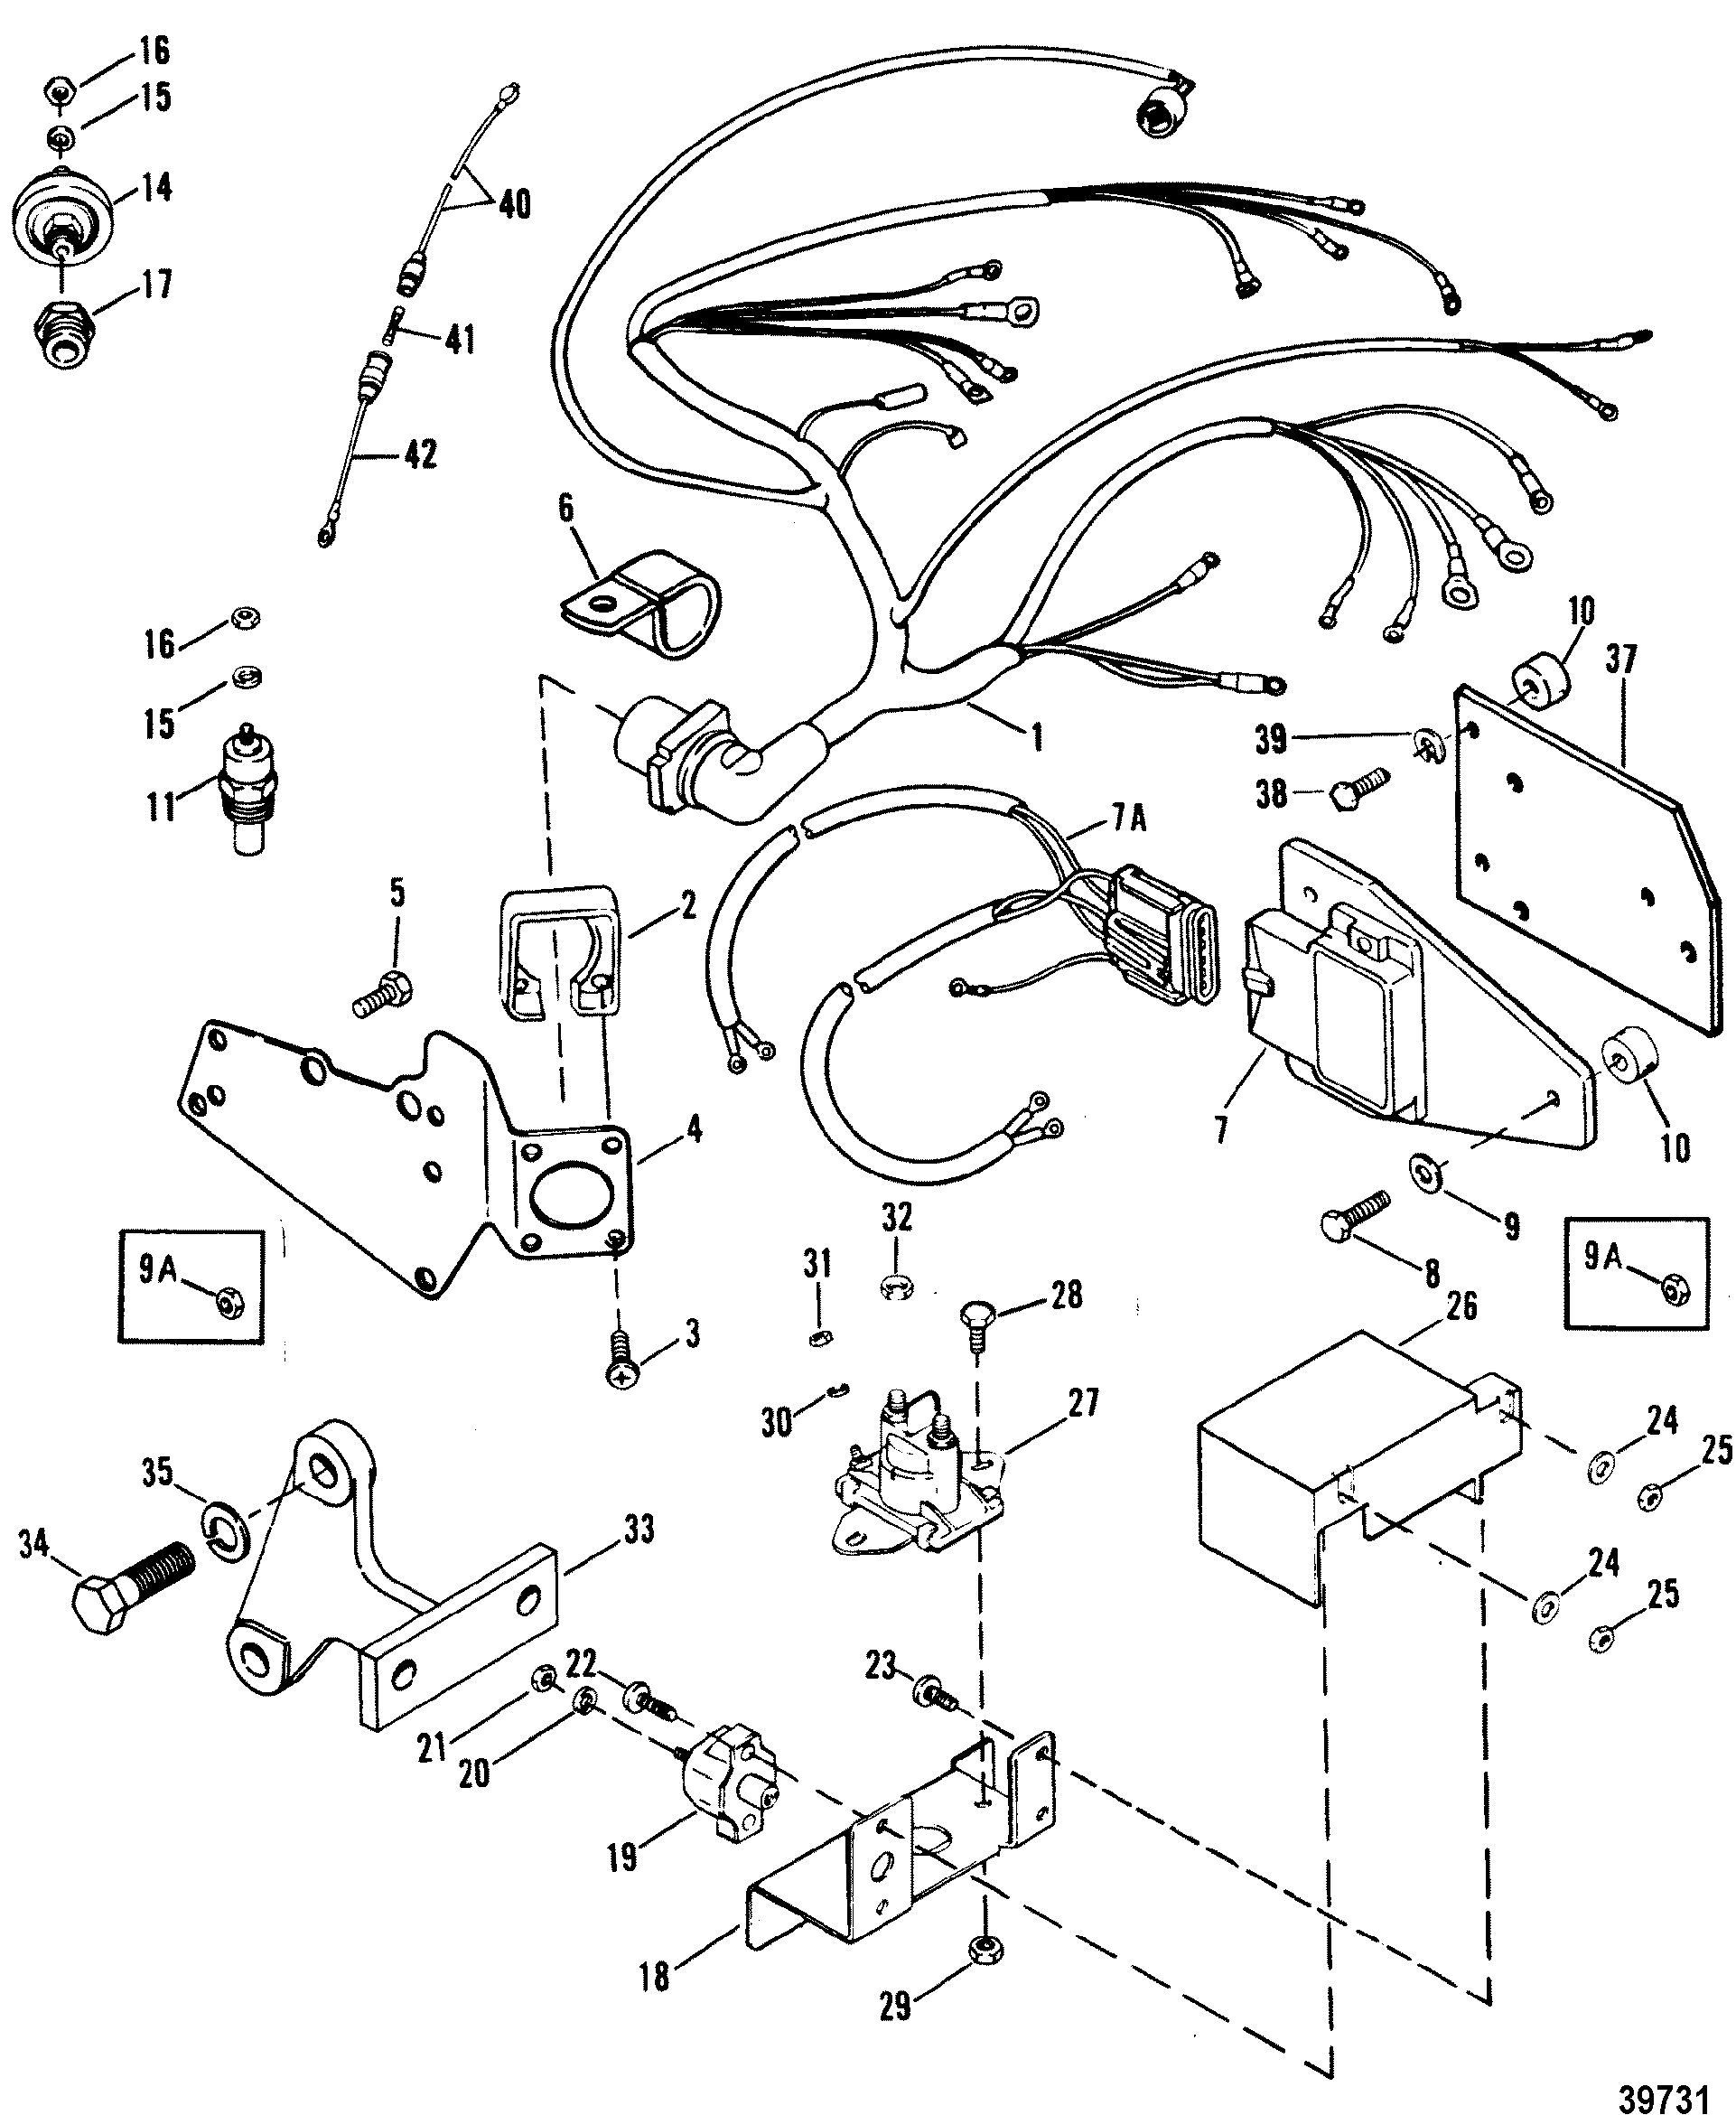 Wiring Harness Electrical And Ignition For Mercruiser 7